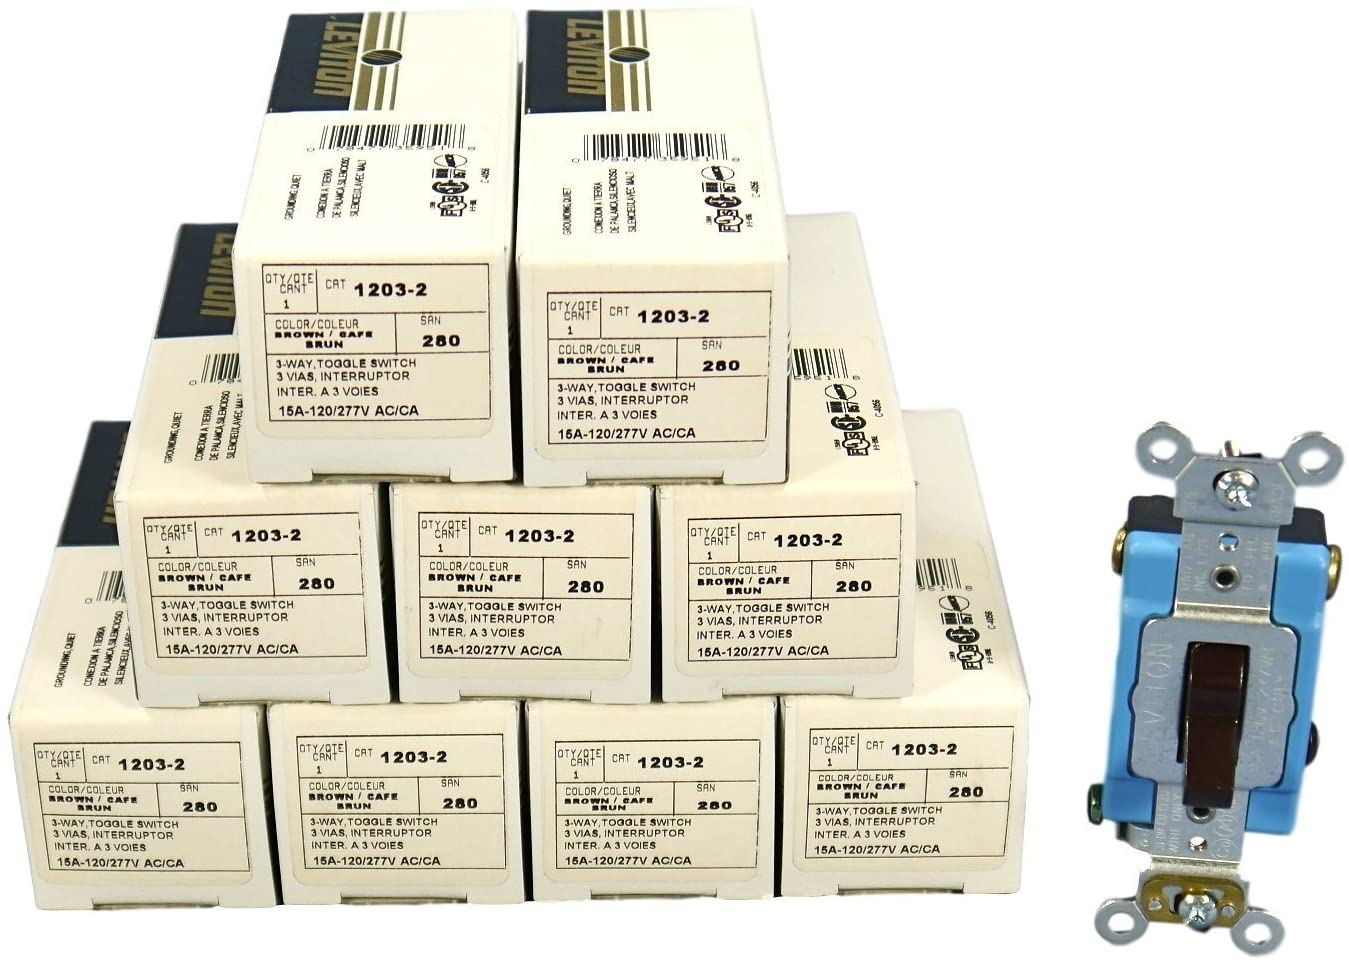 Leviton 1203-2 15 Amp 3-Way Toggle Switch Industrial - Brown (Pkg of 10)